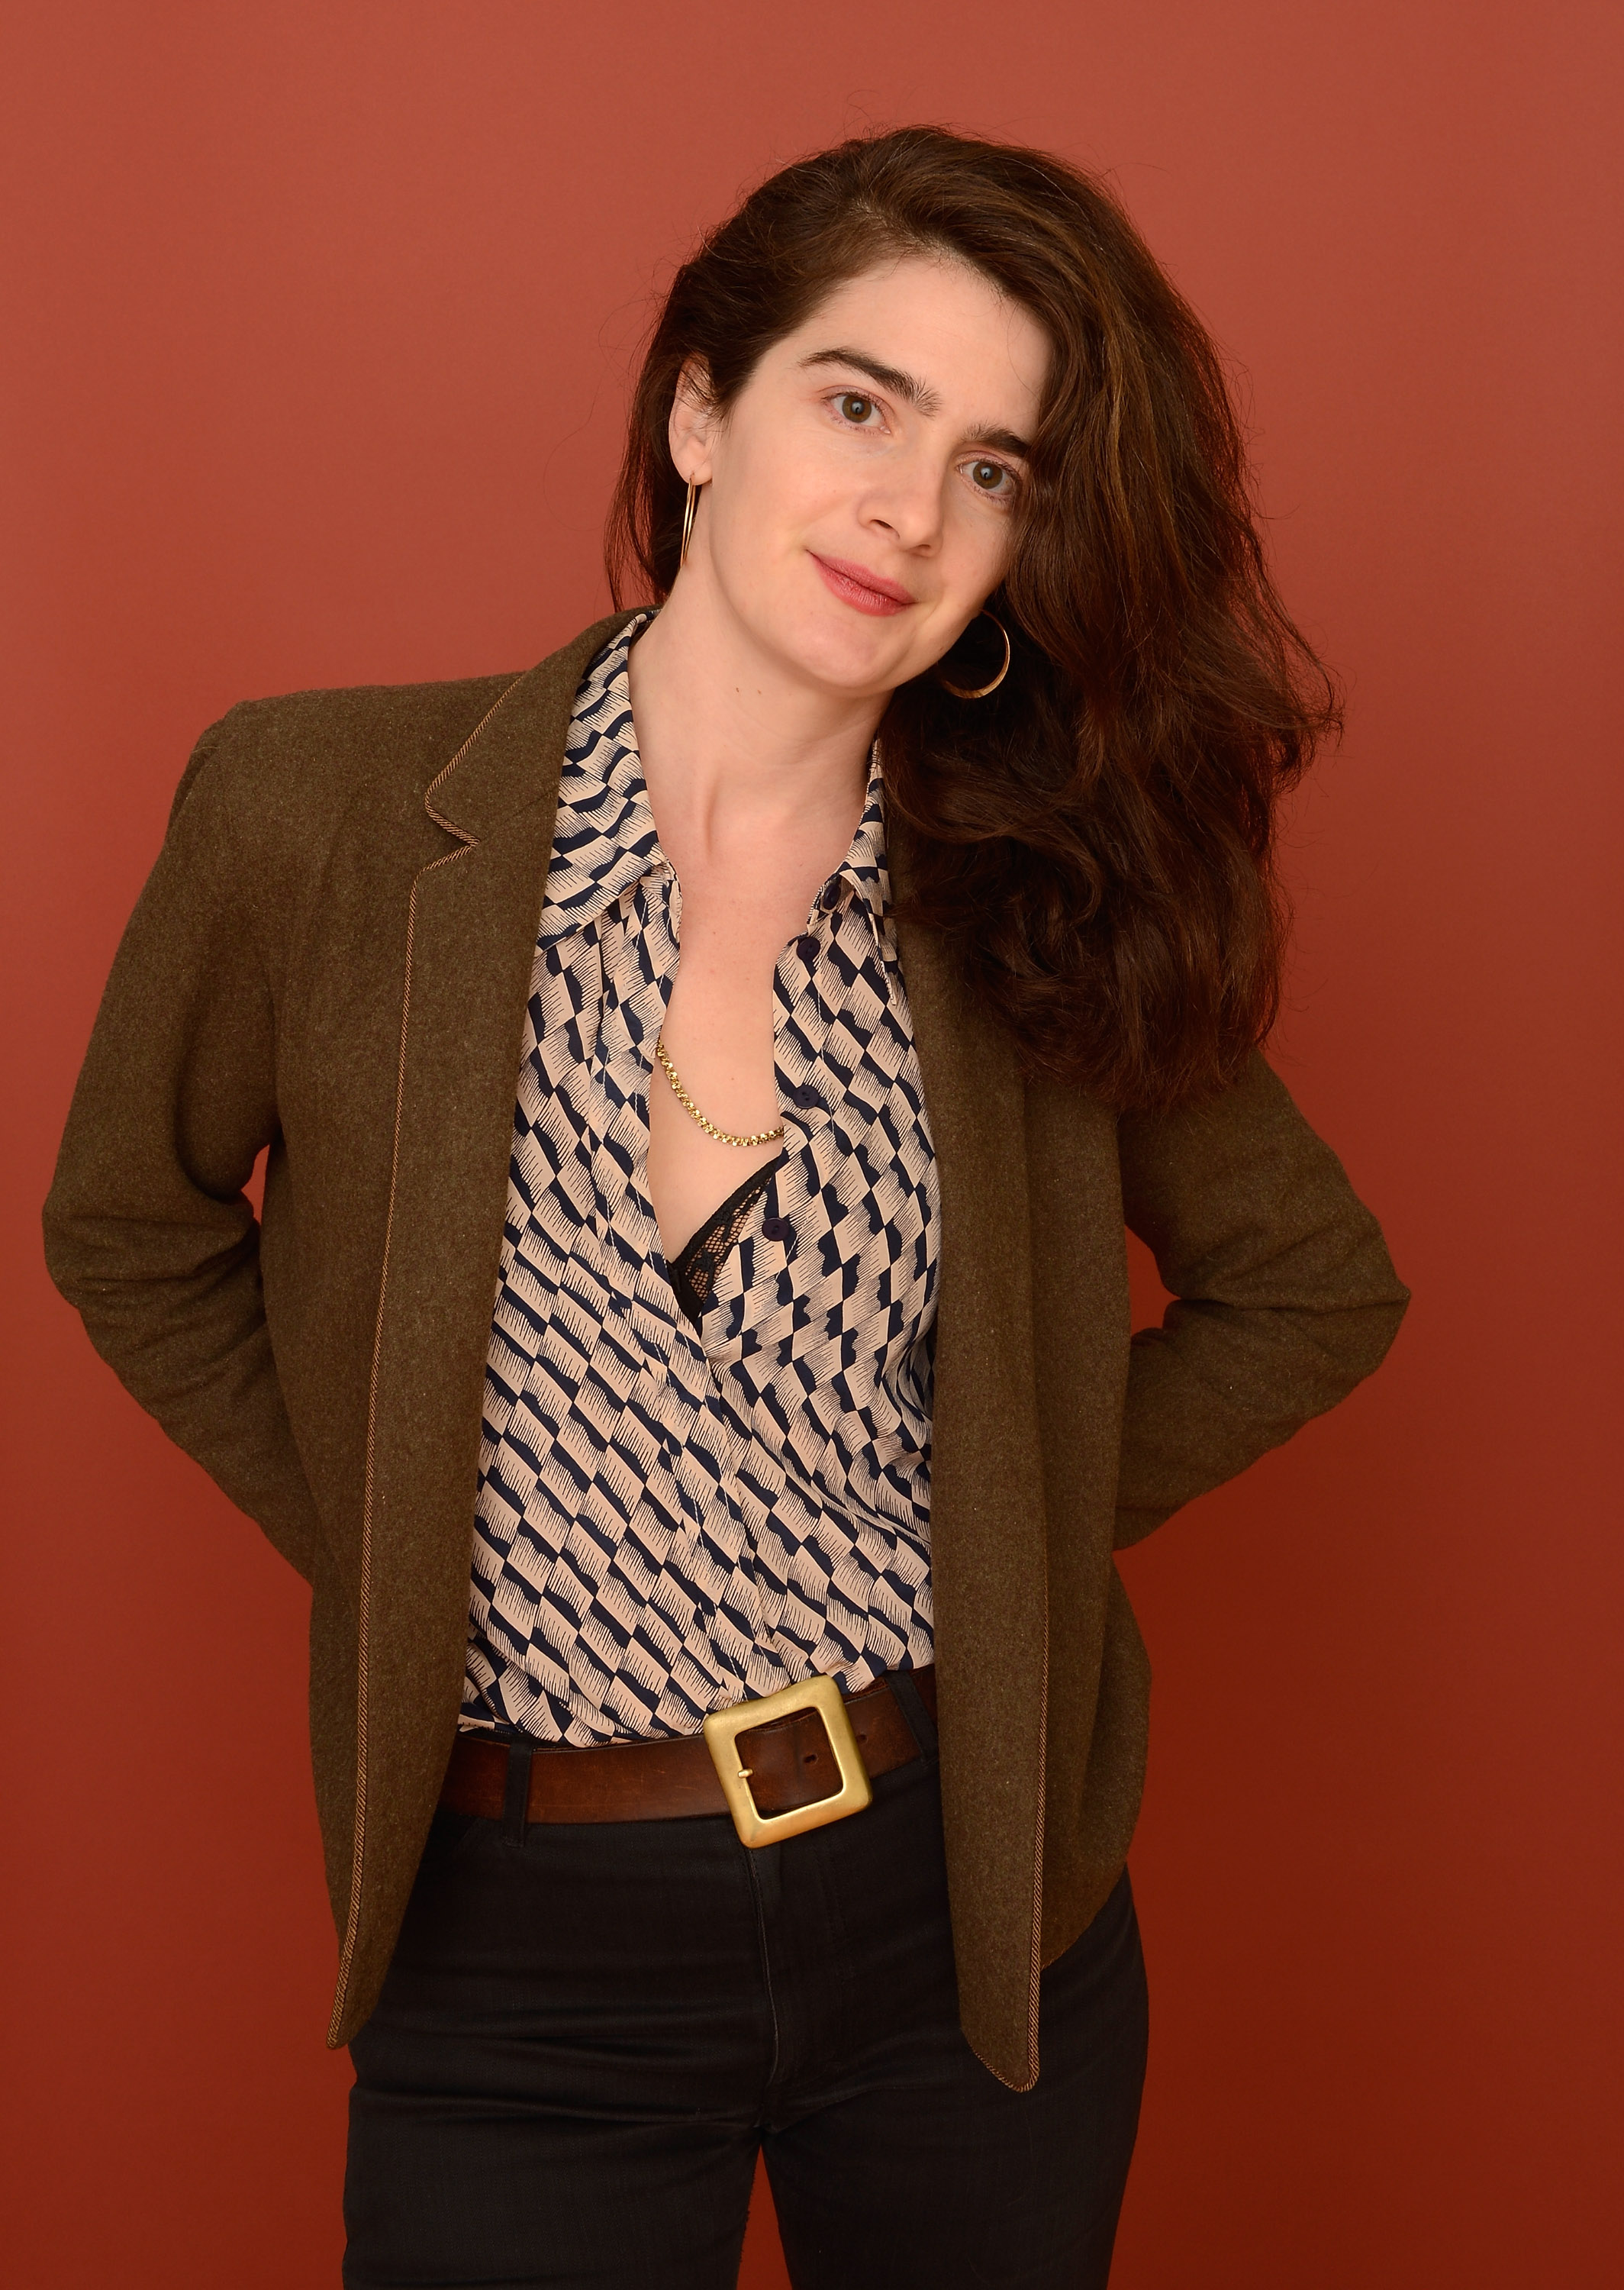 Images Gaby Hoffmann naked (83 photos), Tits, Sideboobs, Selfie, swimsuit 2018